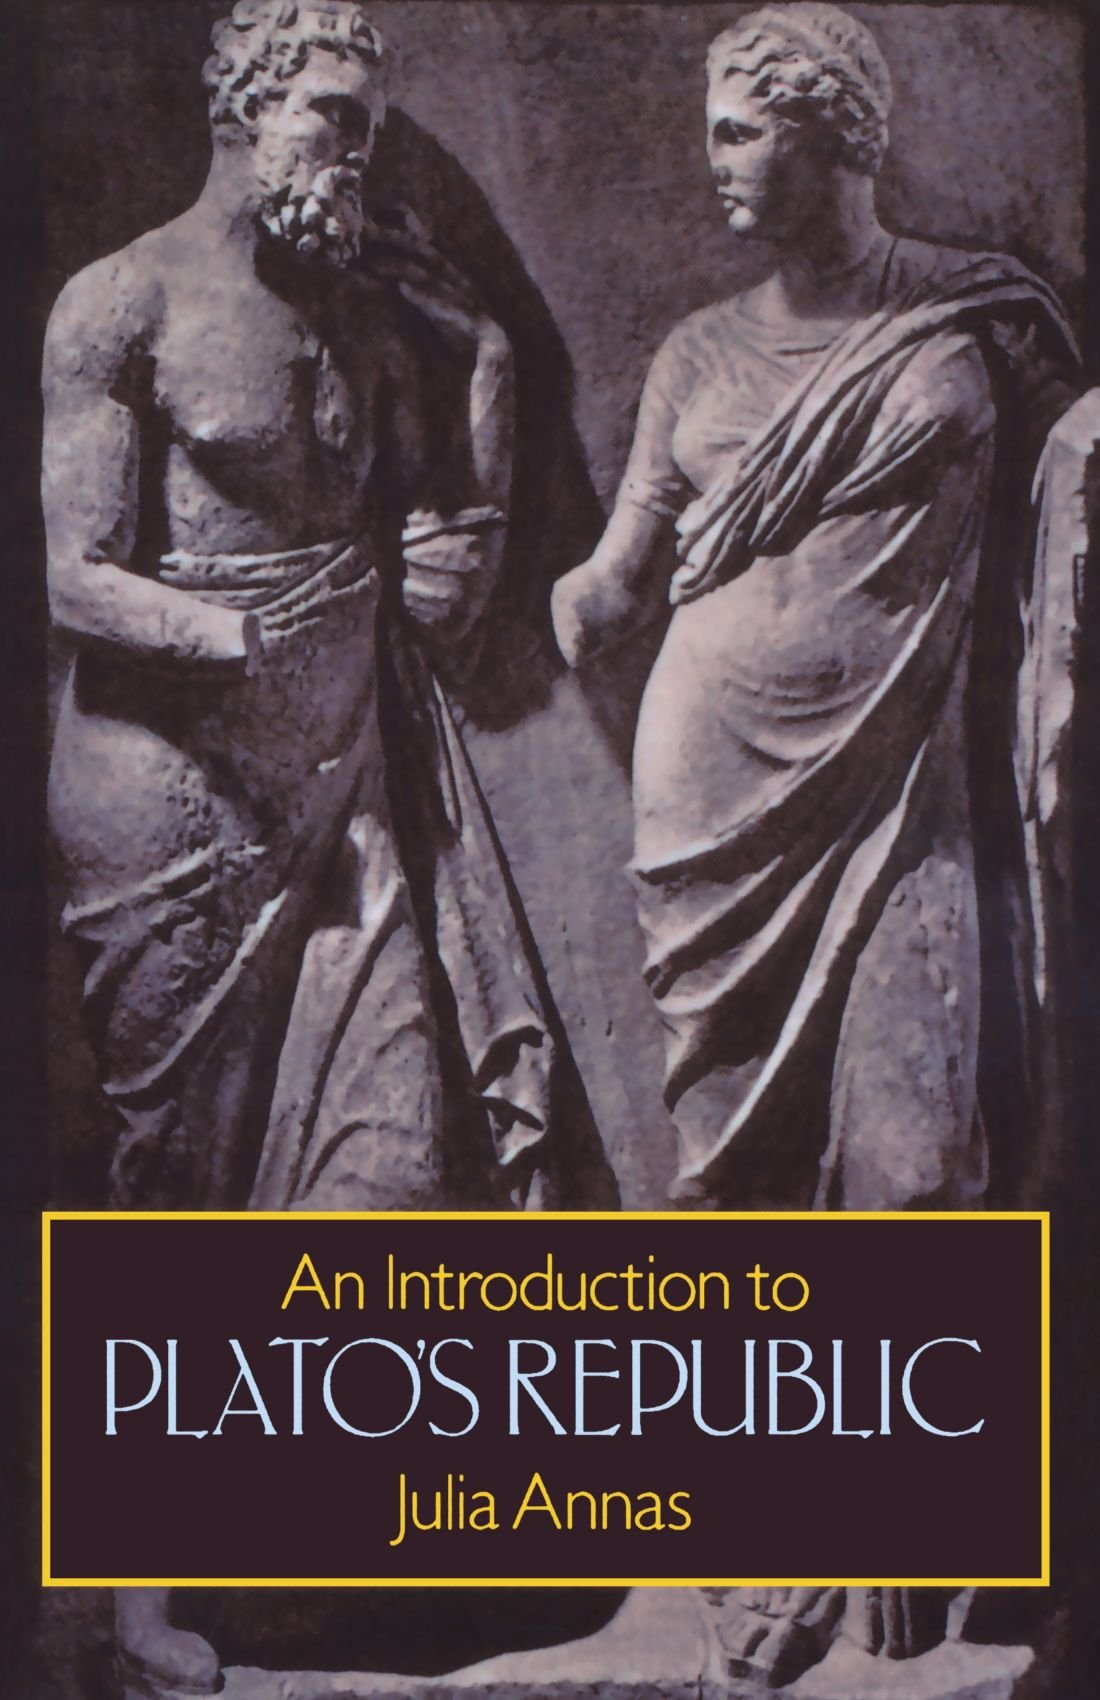 plato republic essay the concepts of human dom and radical  an introduction to plato s republic amazon co uk julia annas an introduction to plato s explanation essay helps